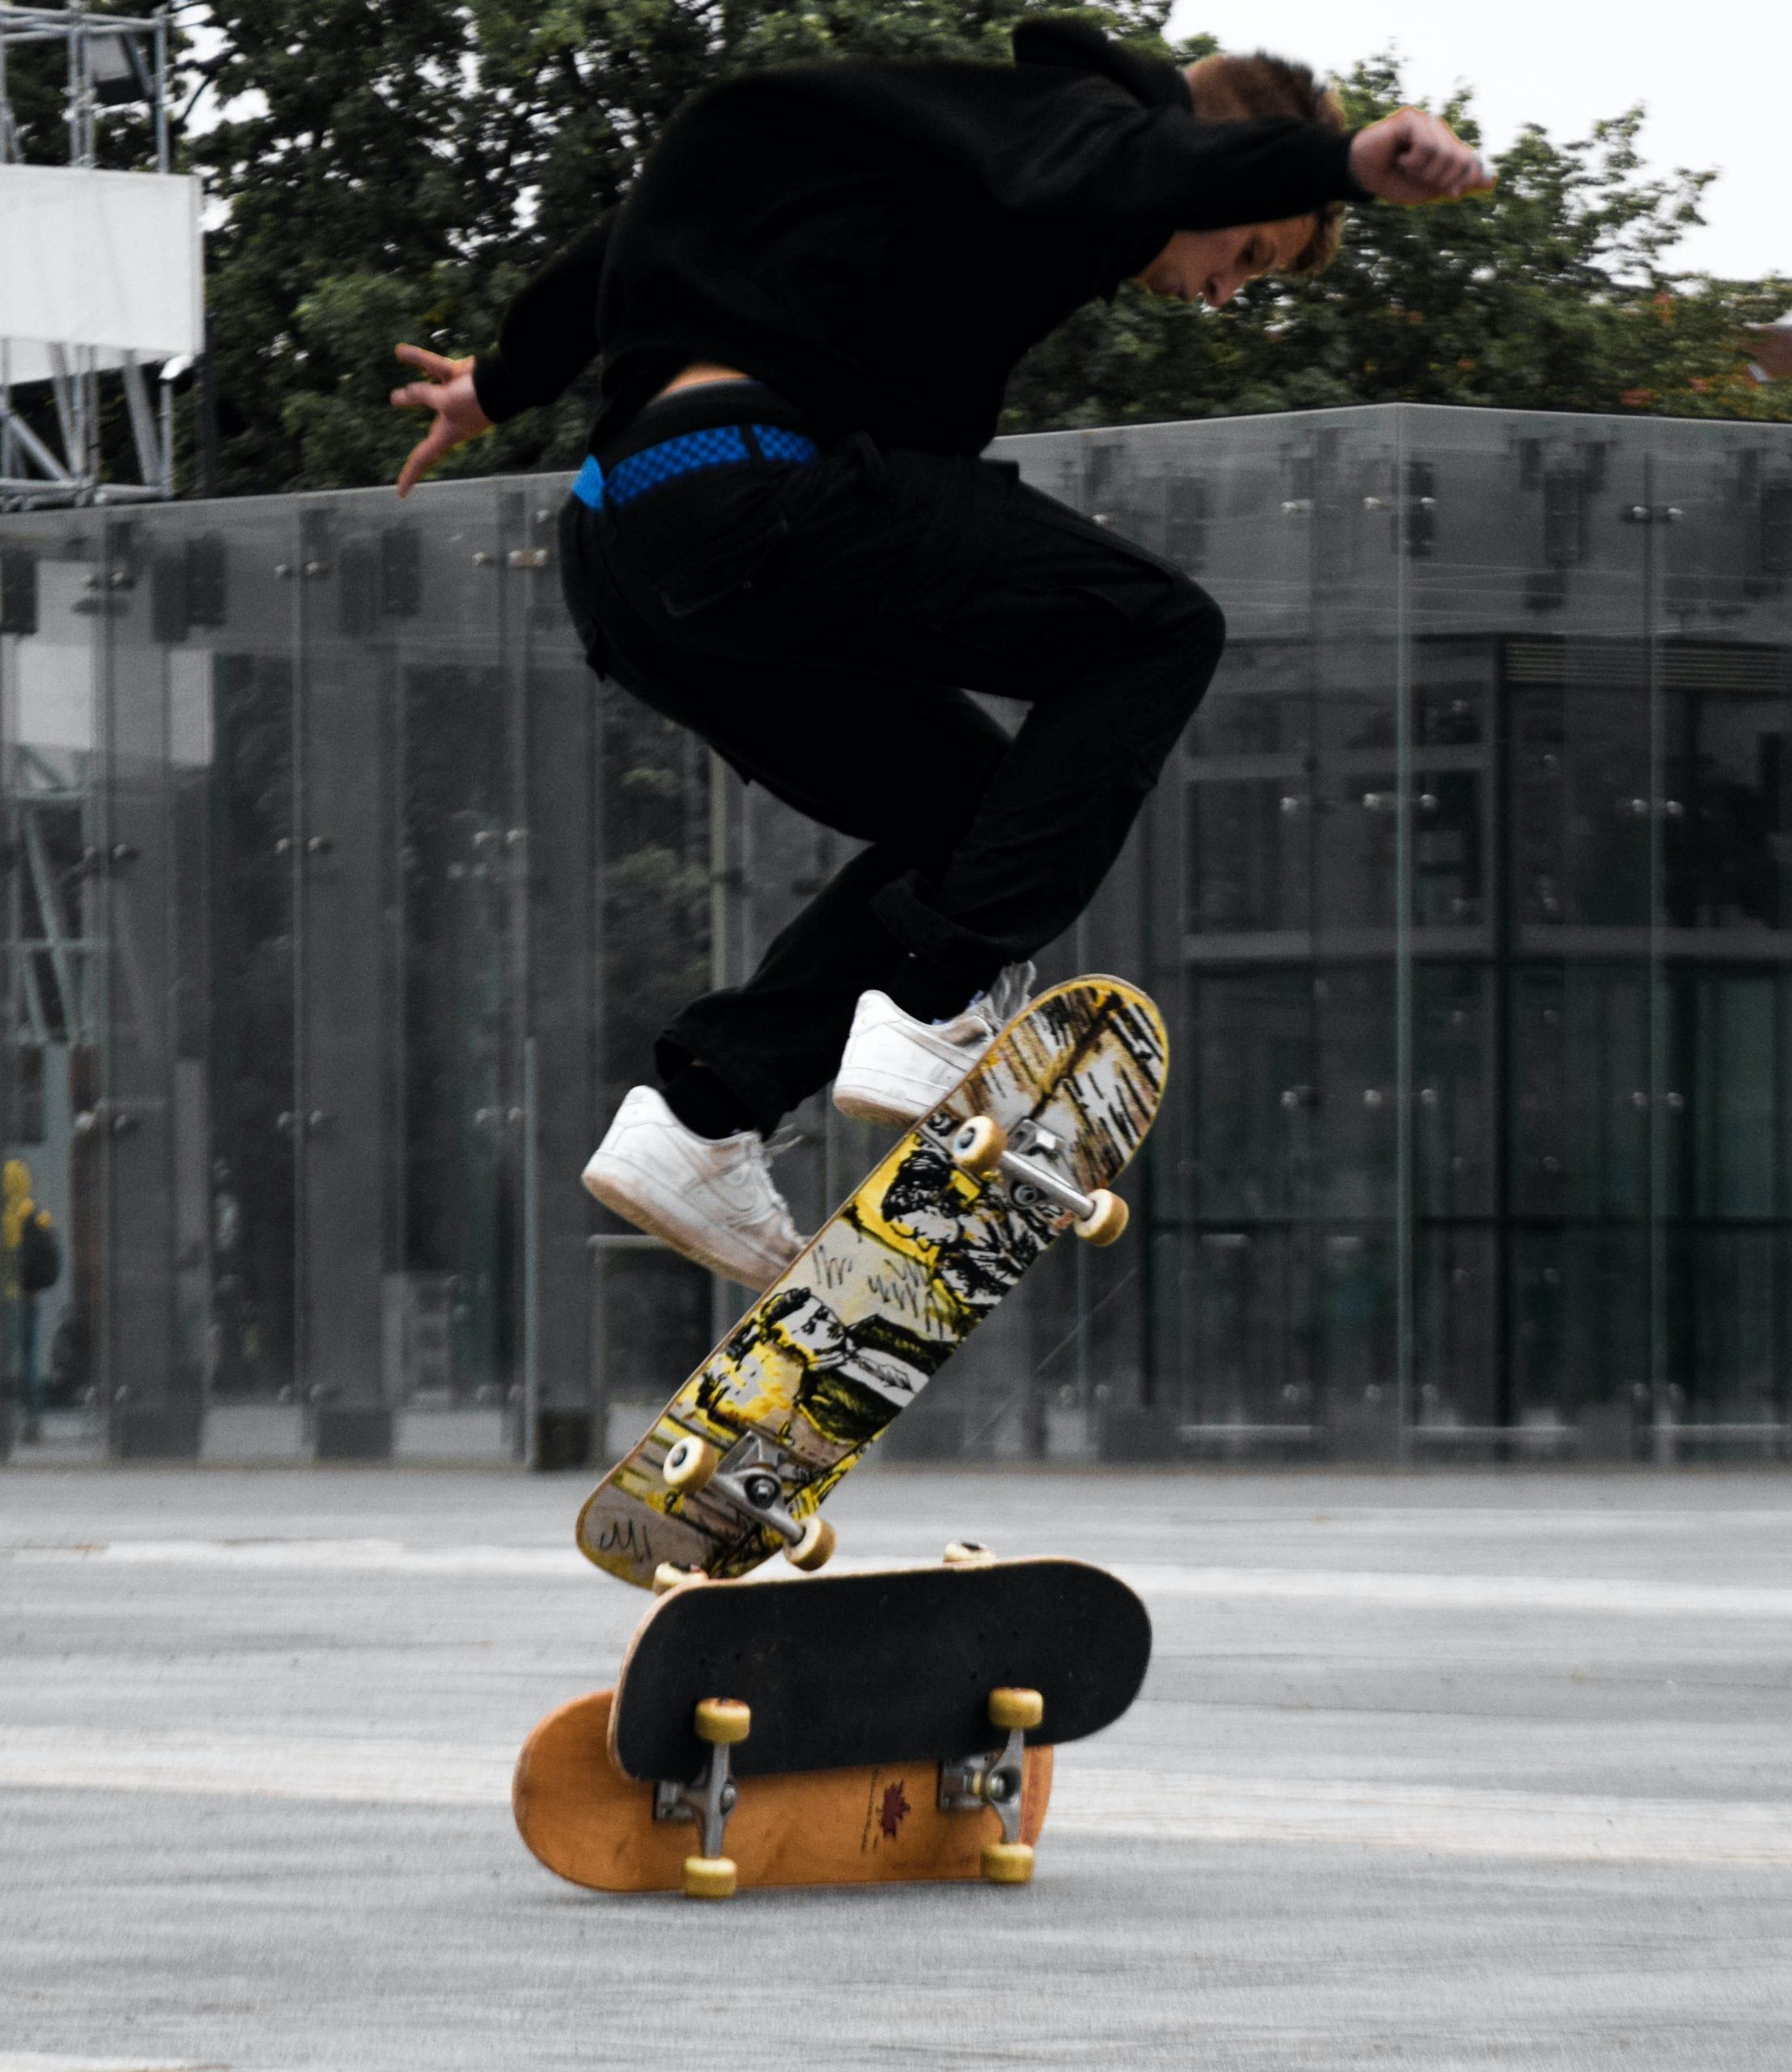 The Different Types Of Skating Shoes And Why They Are Popular